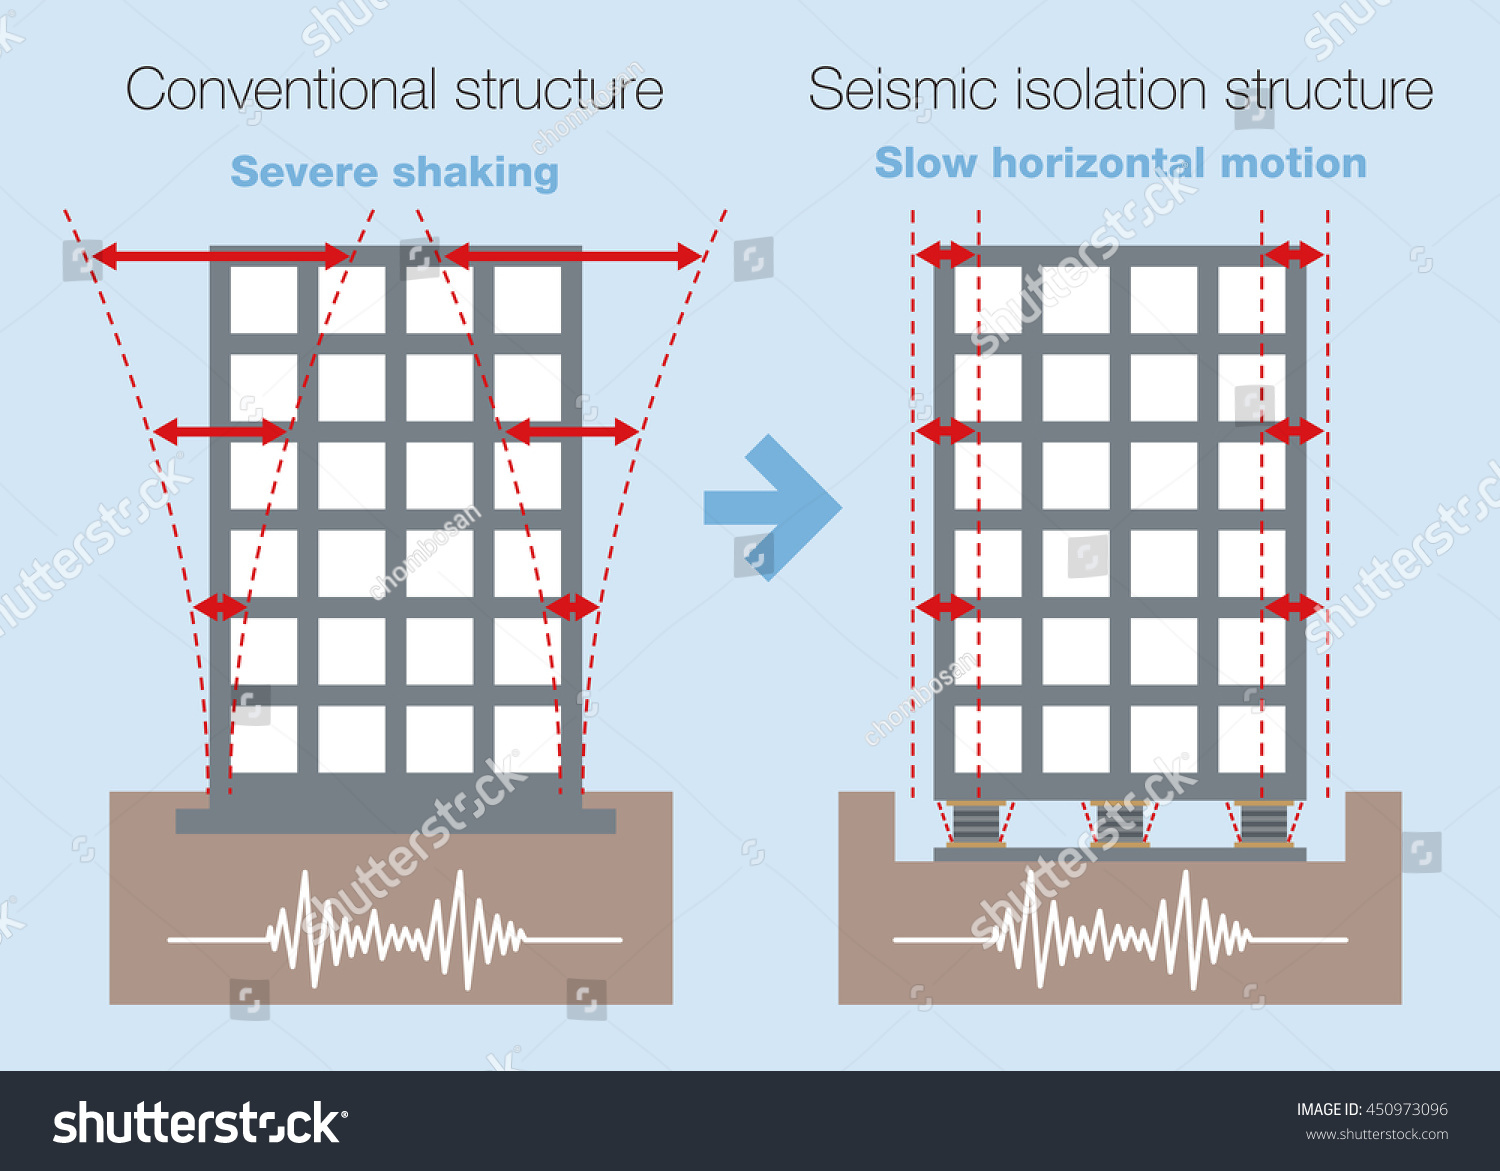 hight resolution of earthquake resistant structure contrast diagram conventional structure and isolated building base isolated system